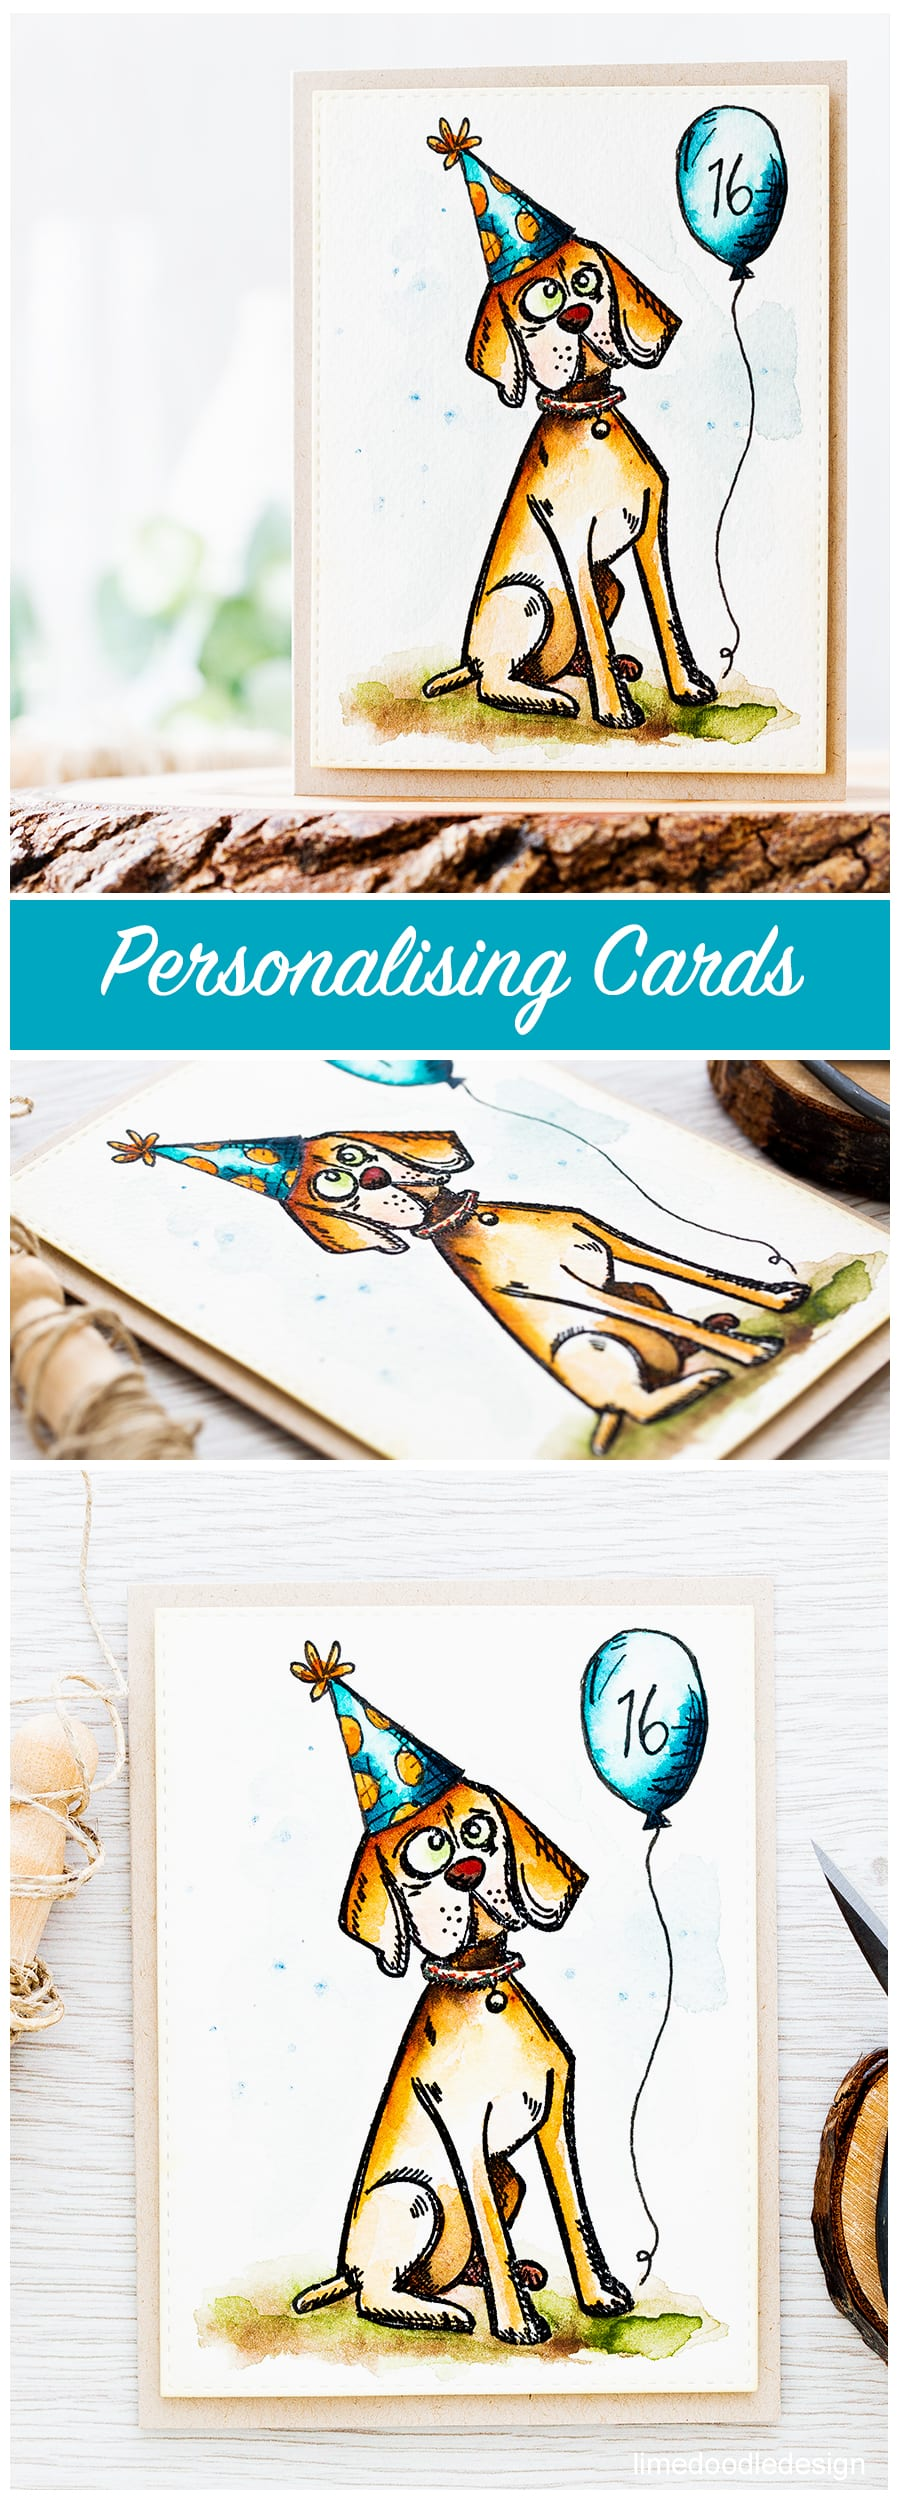 Small touches to personalise an image can make a huge difference to the recipient. Find out more about this birthday card by clicking on the following link: https://limedoodledesign.com/2016/10/personalising-cards/